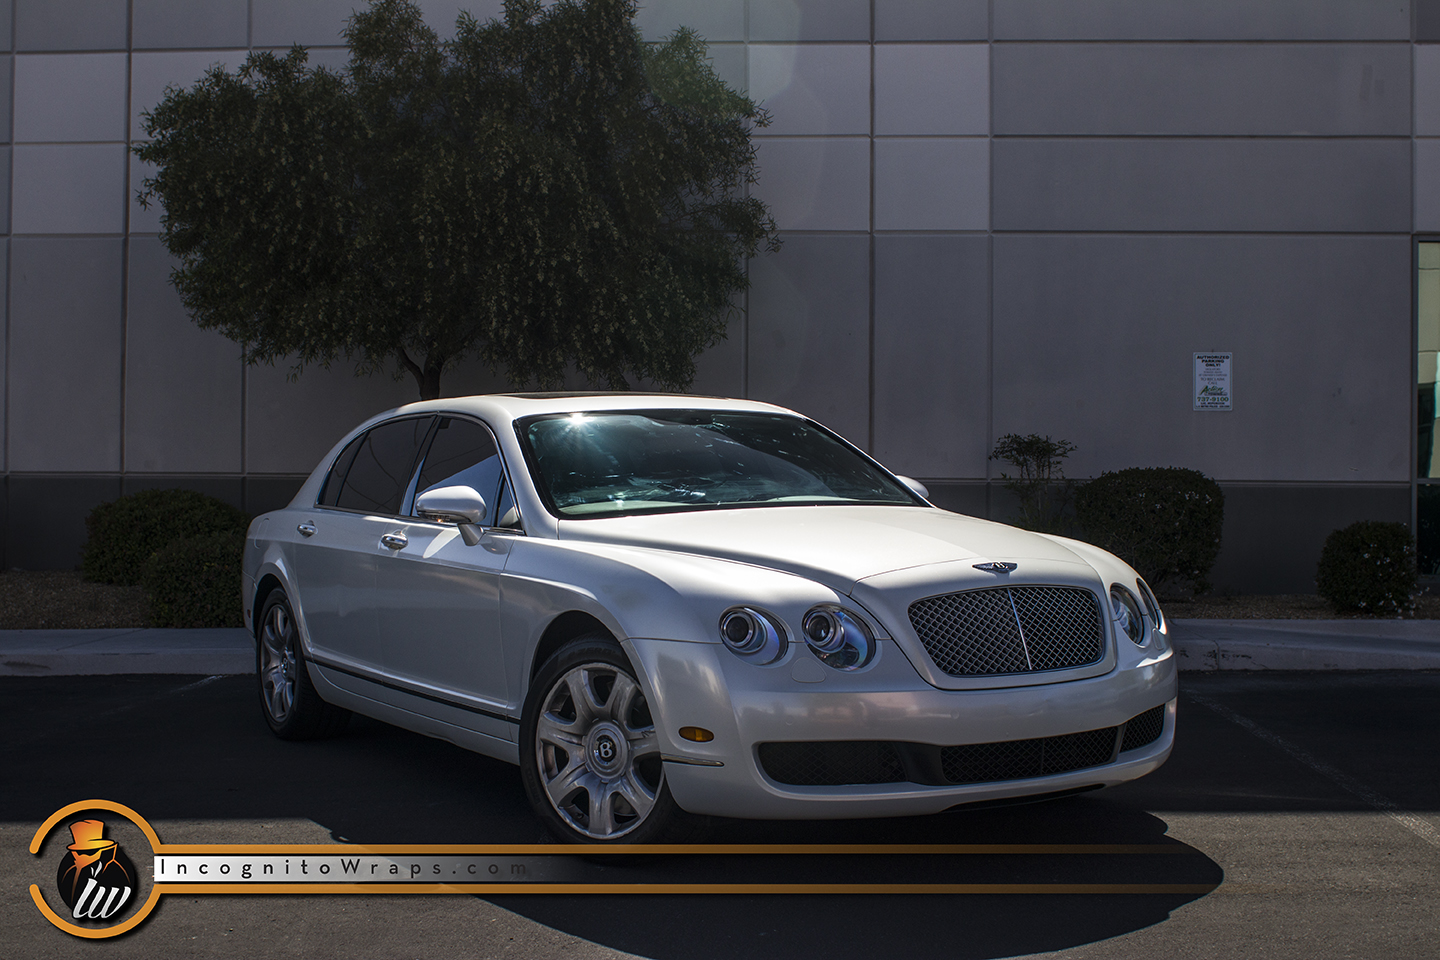 Bentley Flying Spur Gloss Pearl White with Copper Starlight